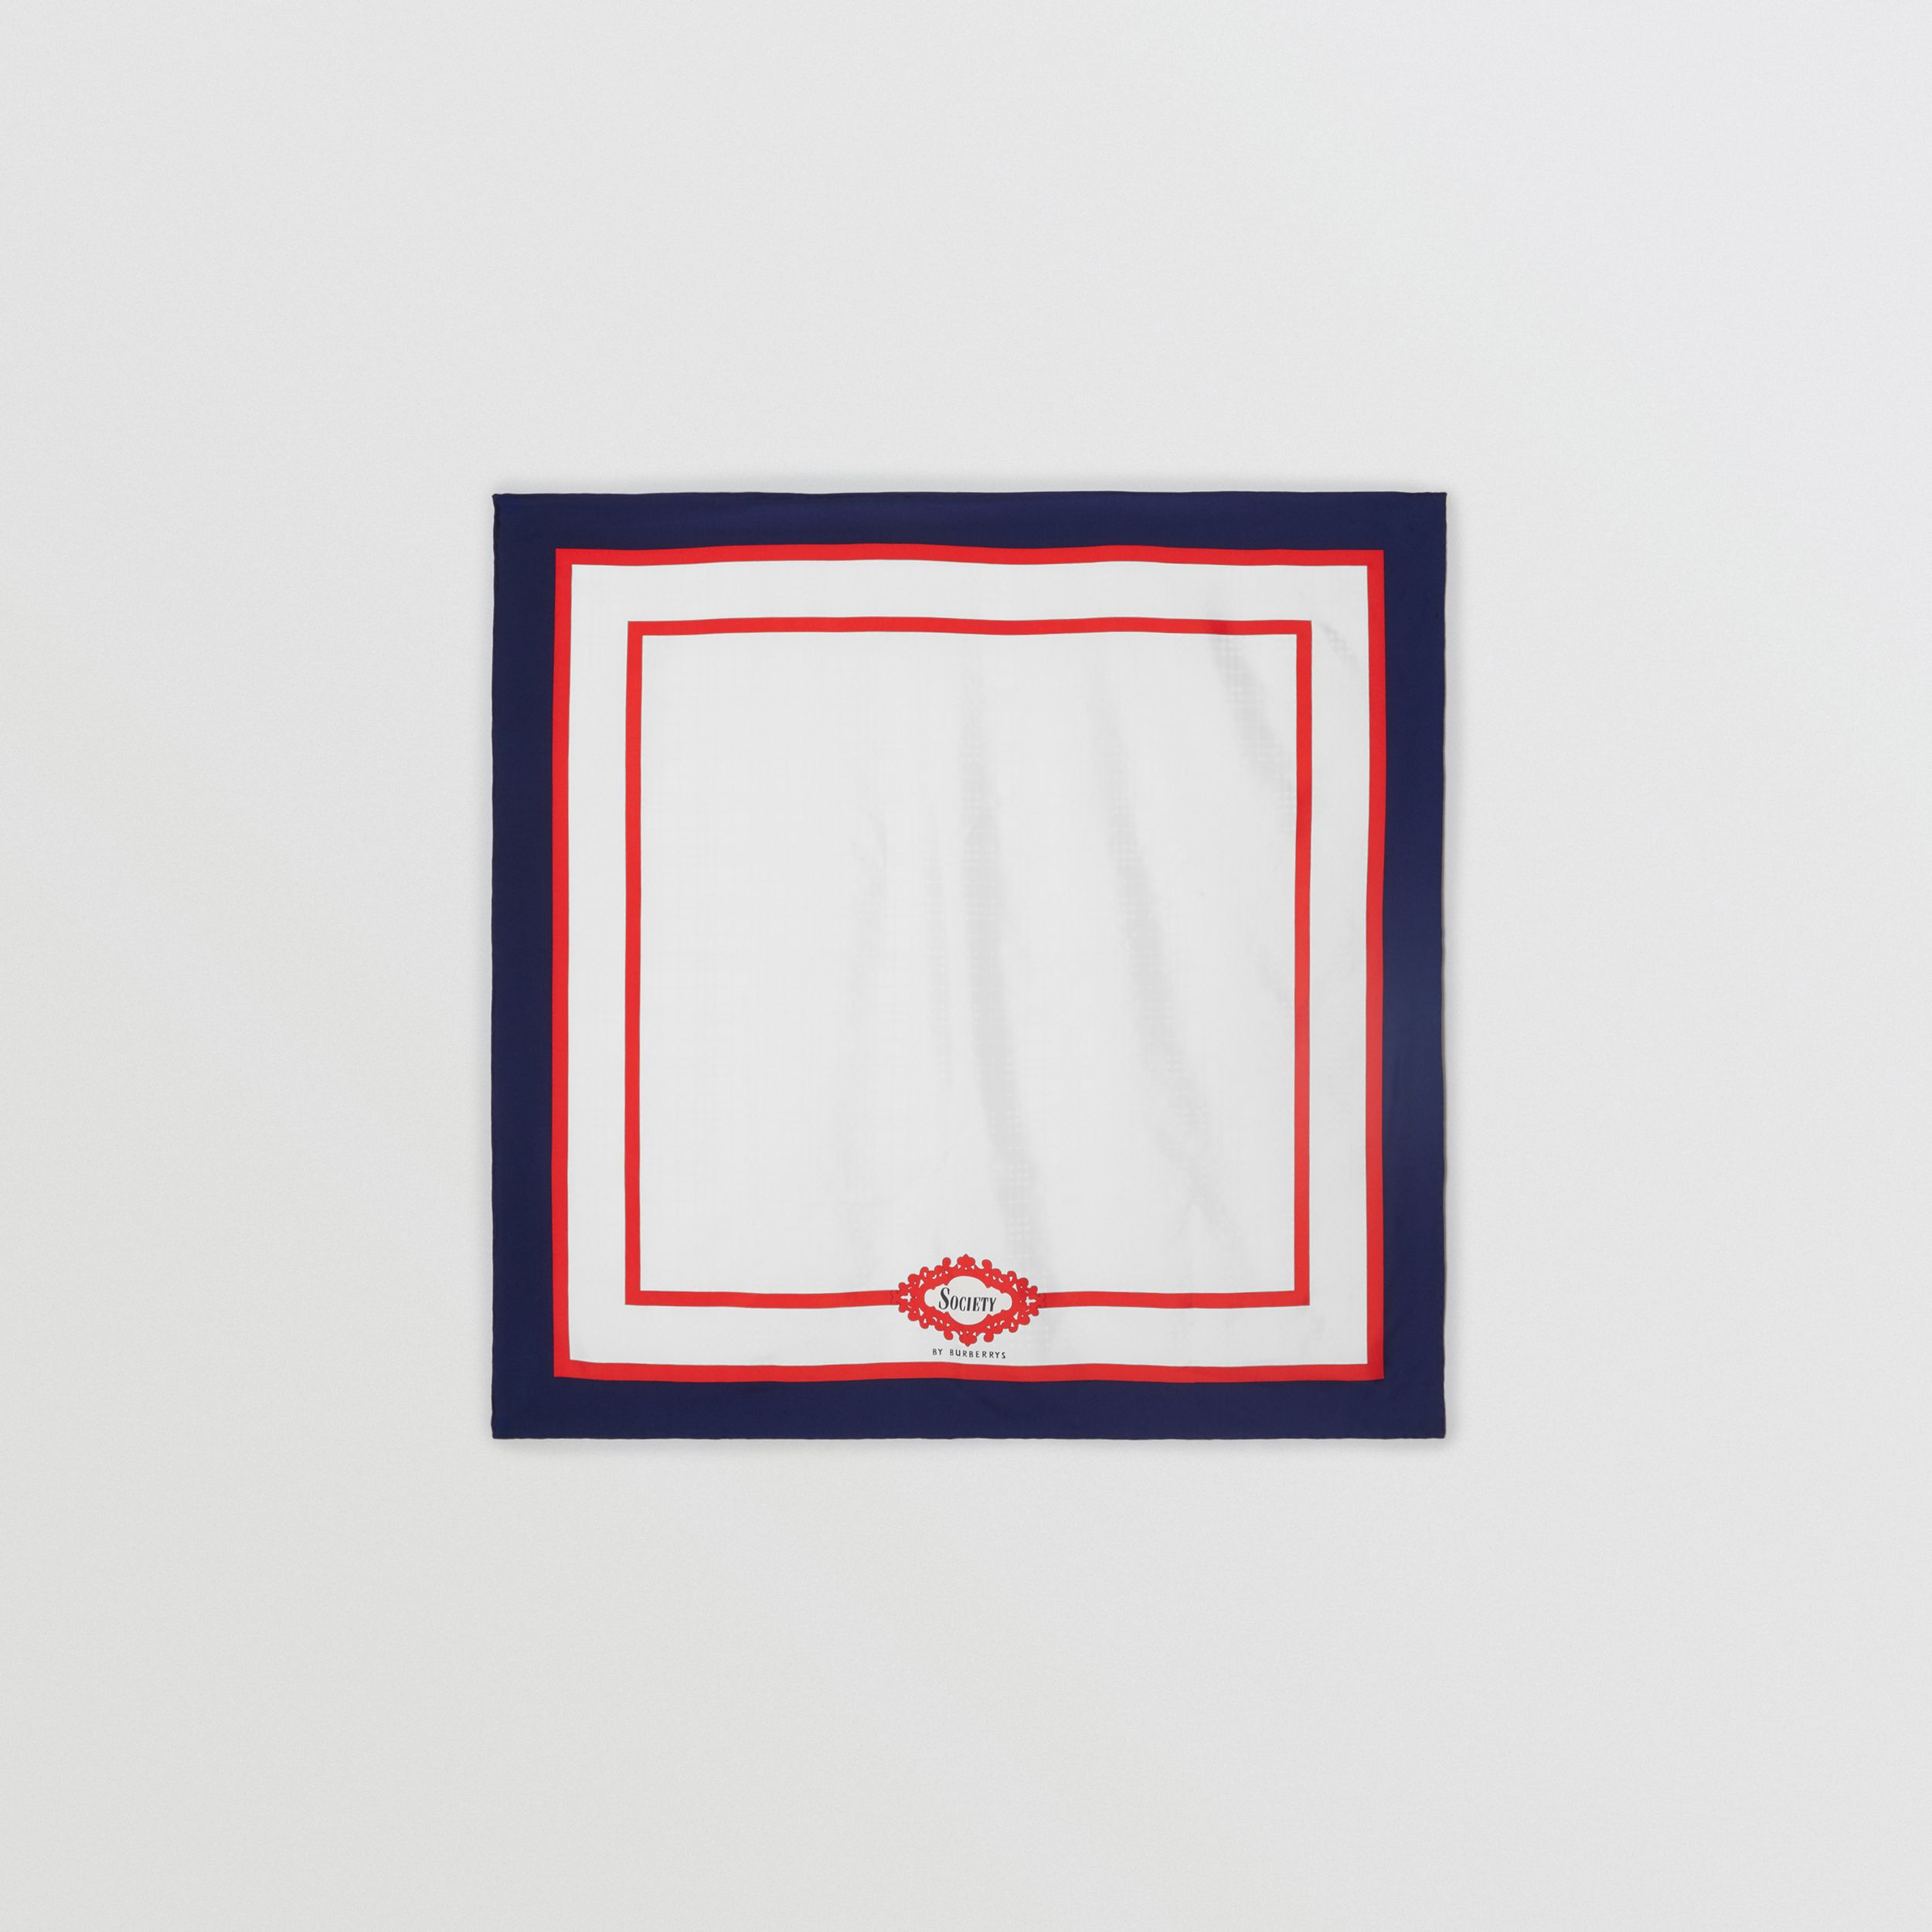 Archive Society Print Silk Square Scarf in Navy | Burberry - 1